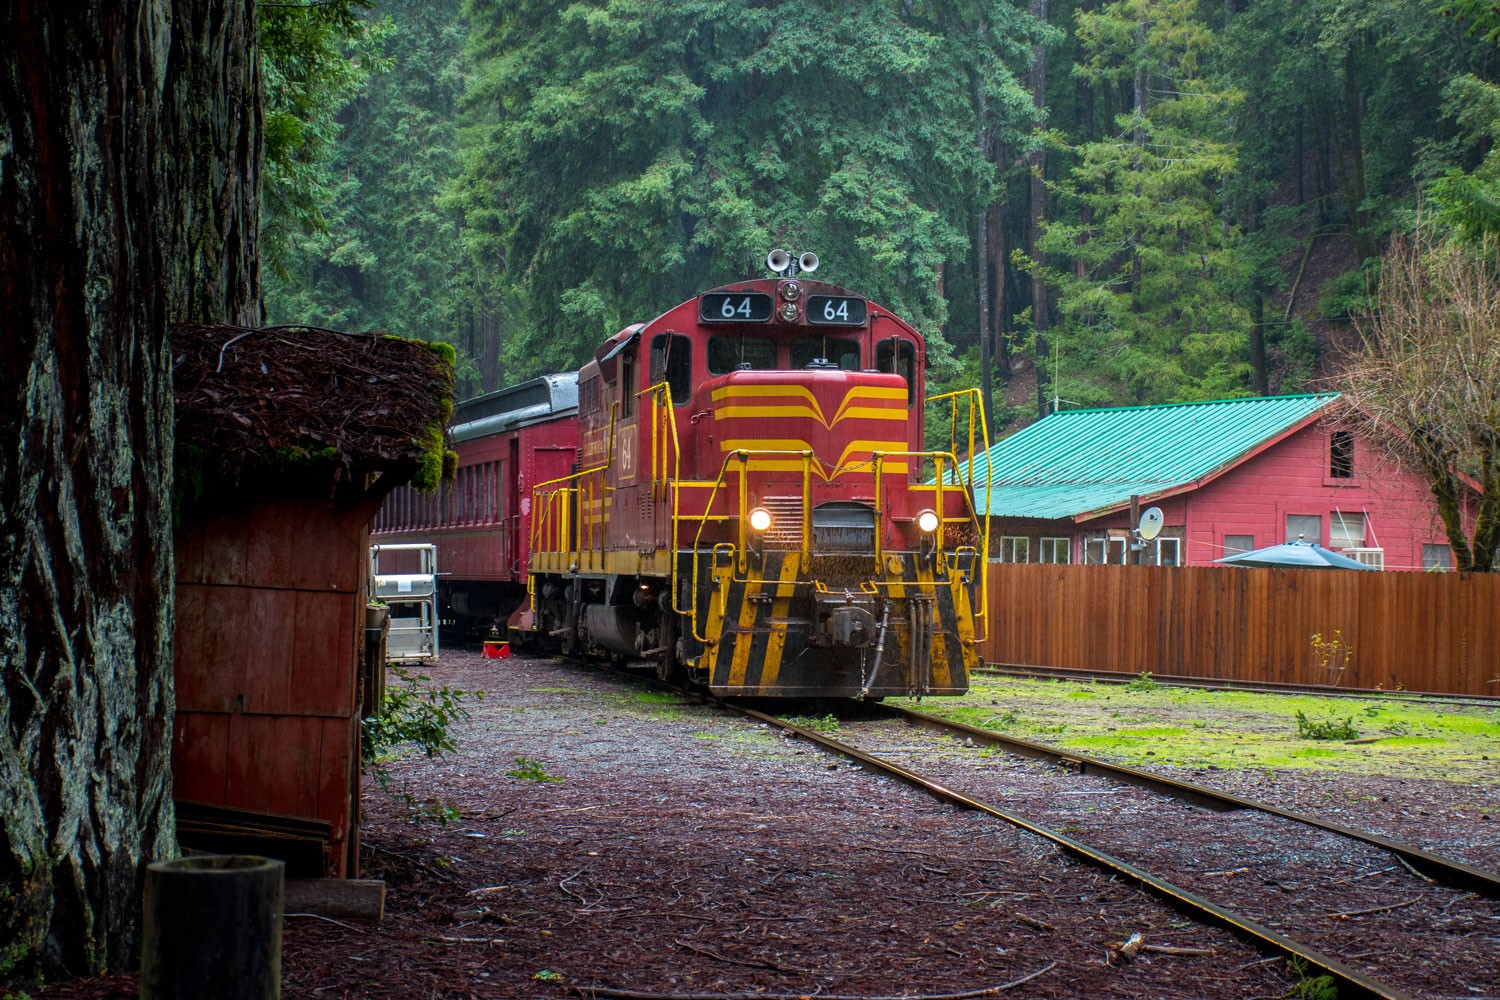 Skunk train discount coupons